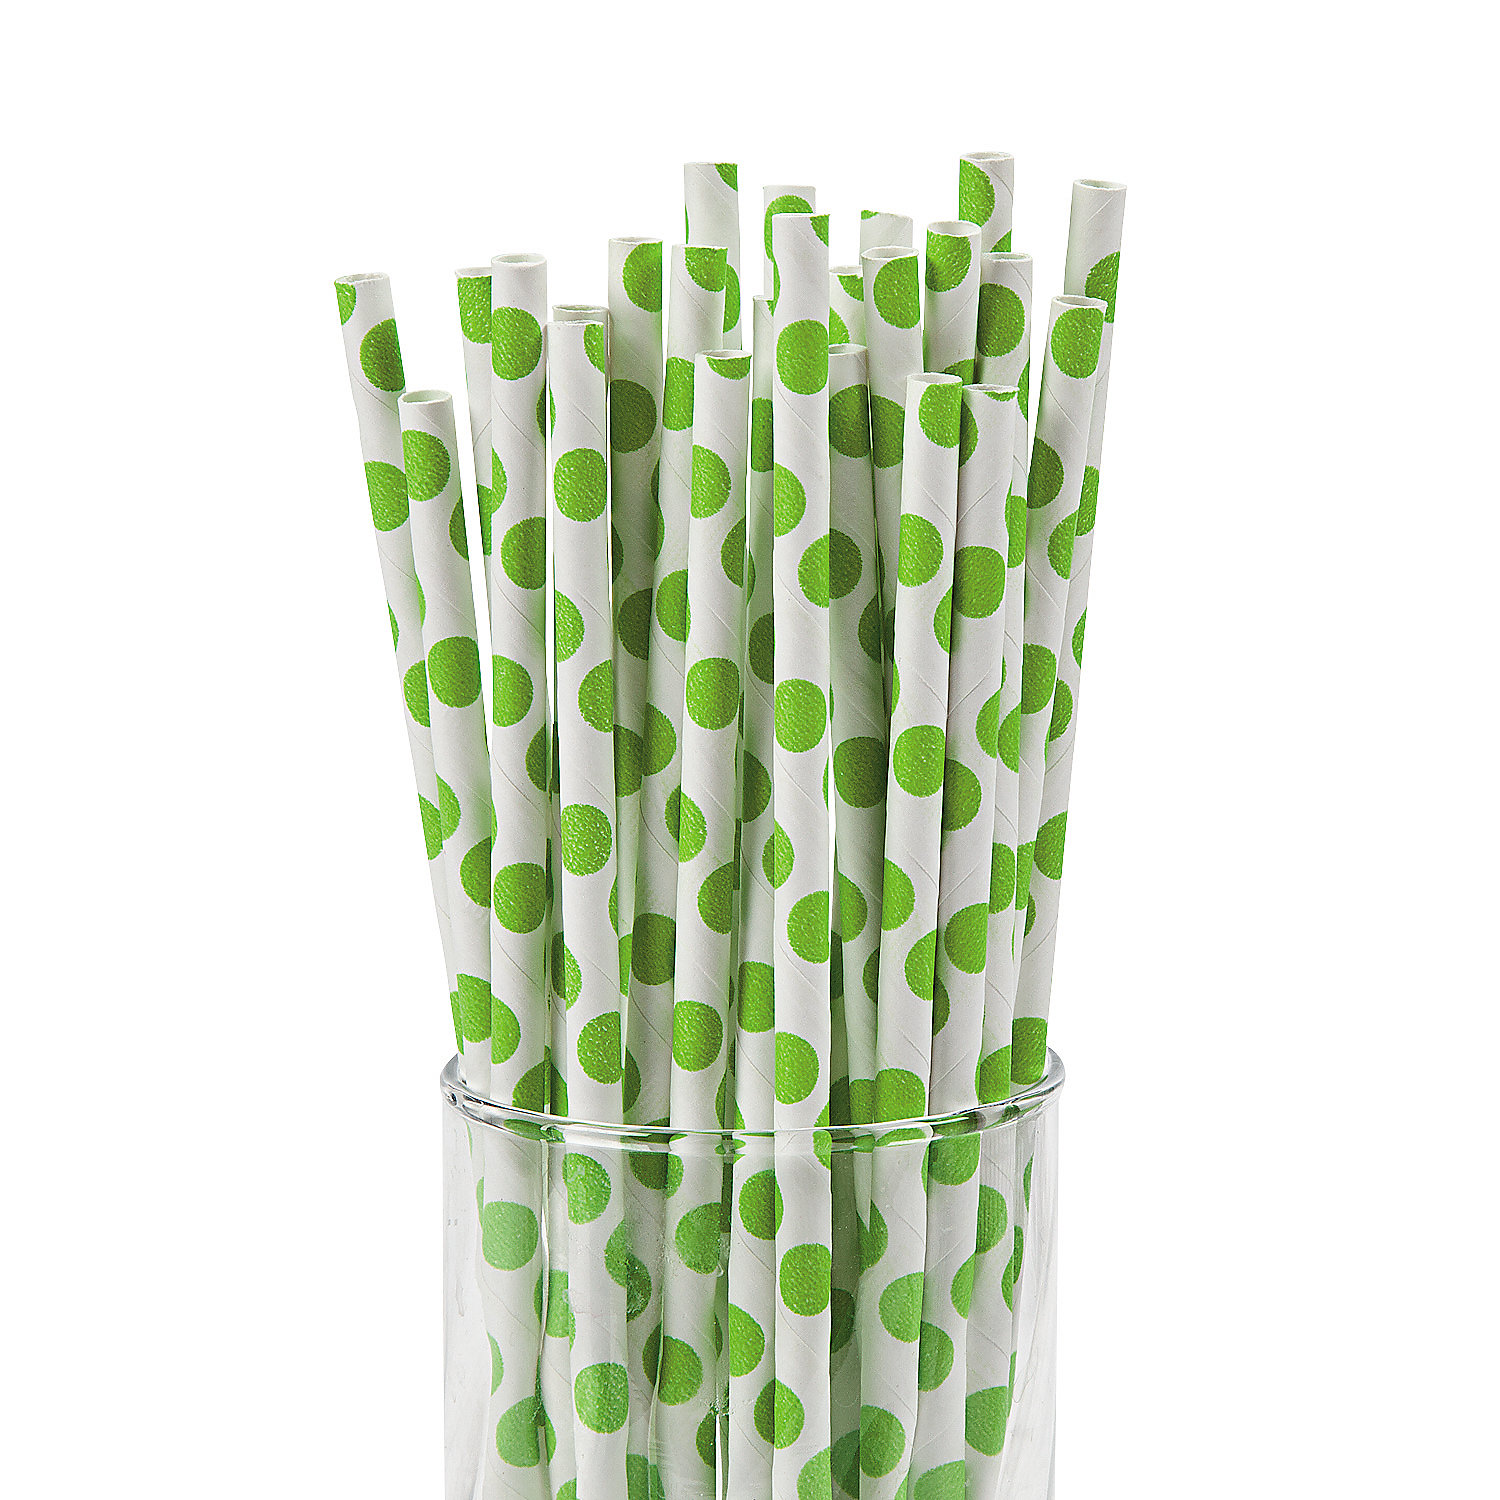 IN-13623088 Lime Green Polka Dot Paper Straws 24 Piece(s)